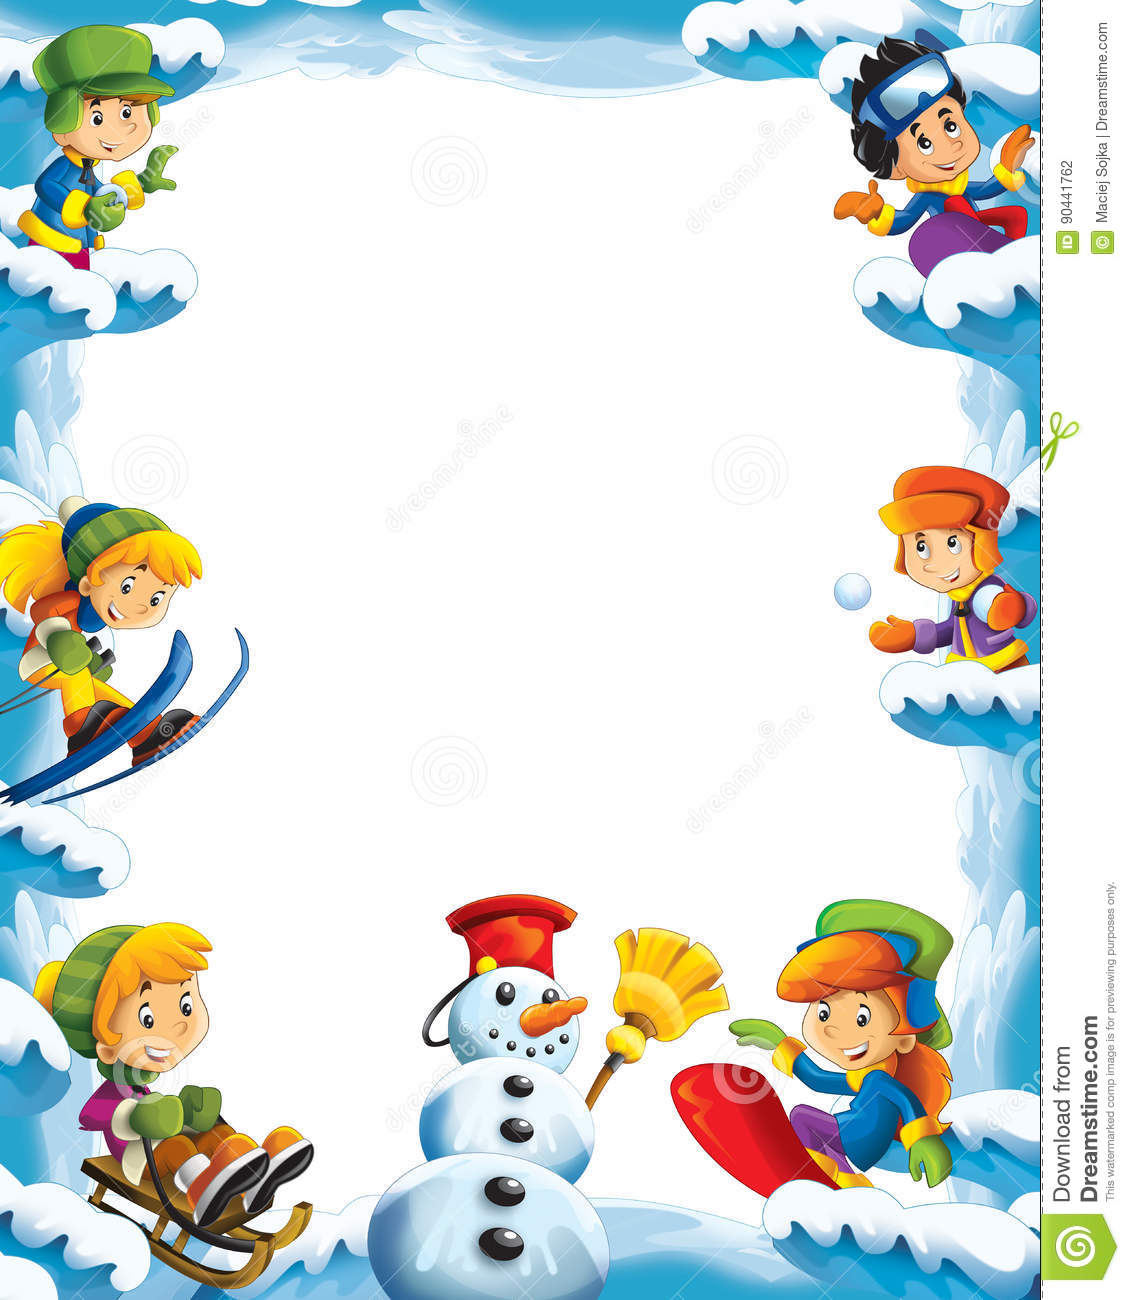 Cartoon snow and ice frame for different usage with space for text